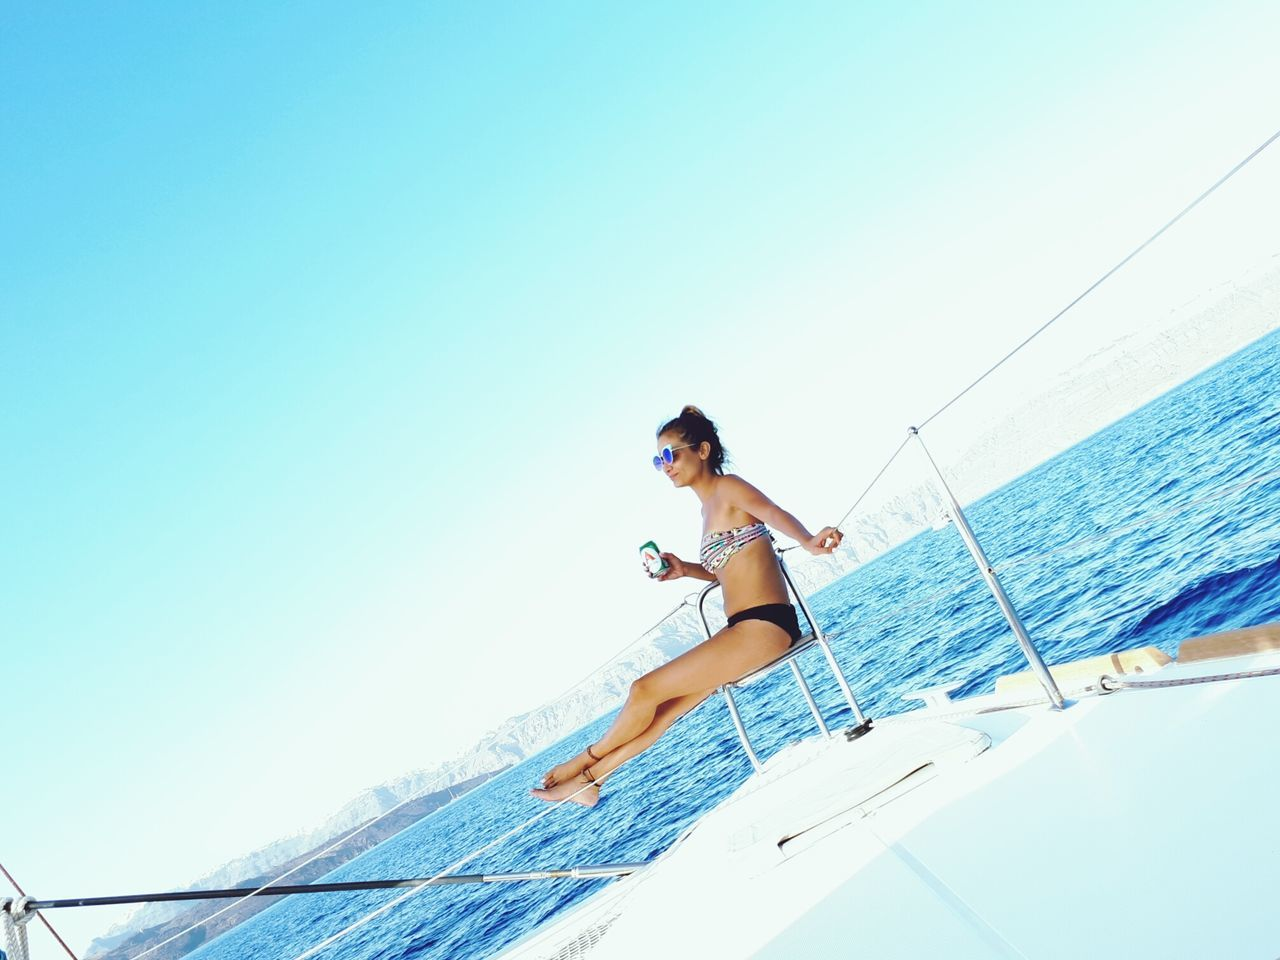 leisure activity, one person, sea, lifestyles, copy space, young adult, beauty in nature, transportation, real people, bikini, nautical vessel, nature, vacations, young women, summer, clear sky, beautiful woman, water, front view, outdoors, full length, day, sailing, sky, horizon over water, people